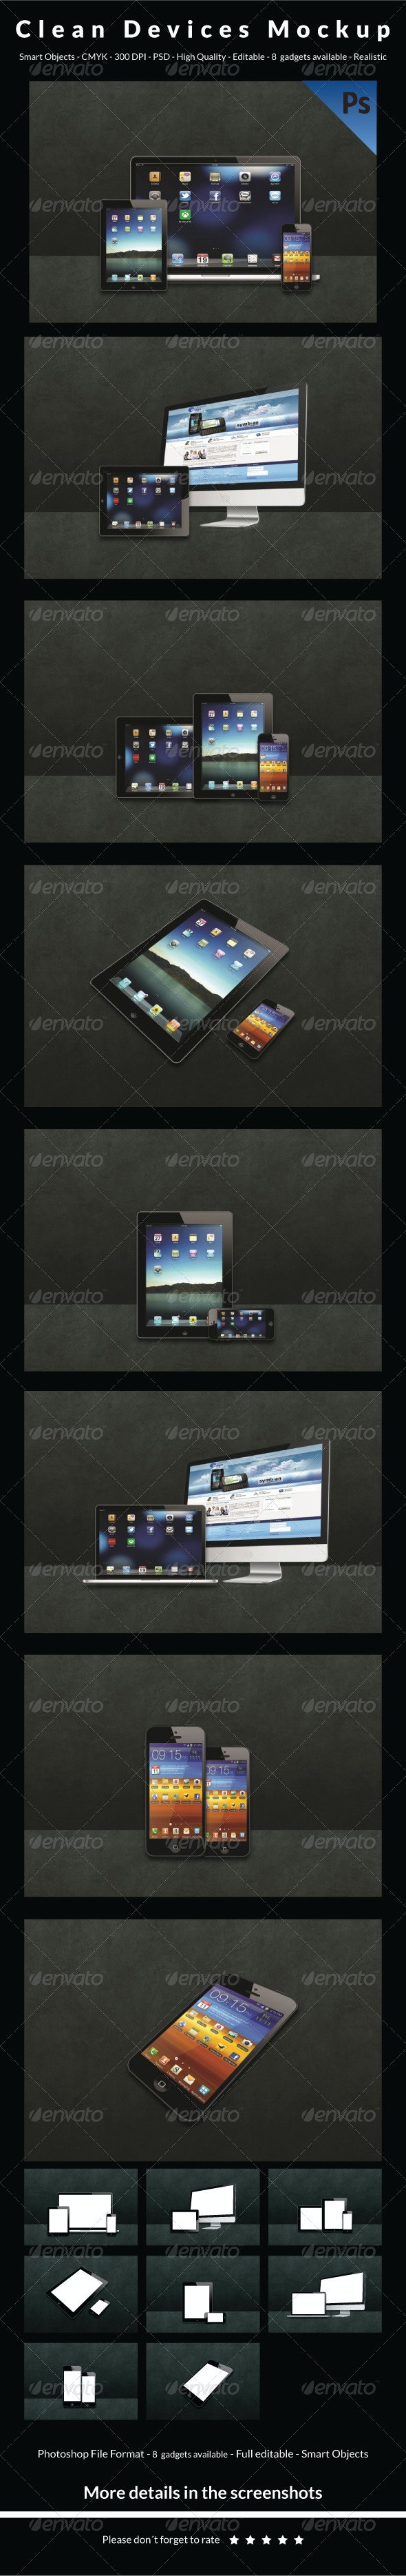 Clean Devices Mockup - Multiple Displays